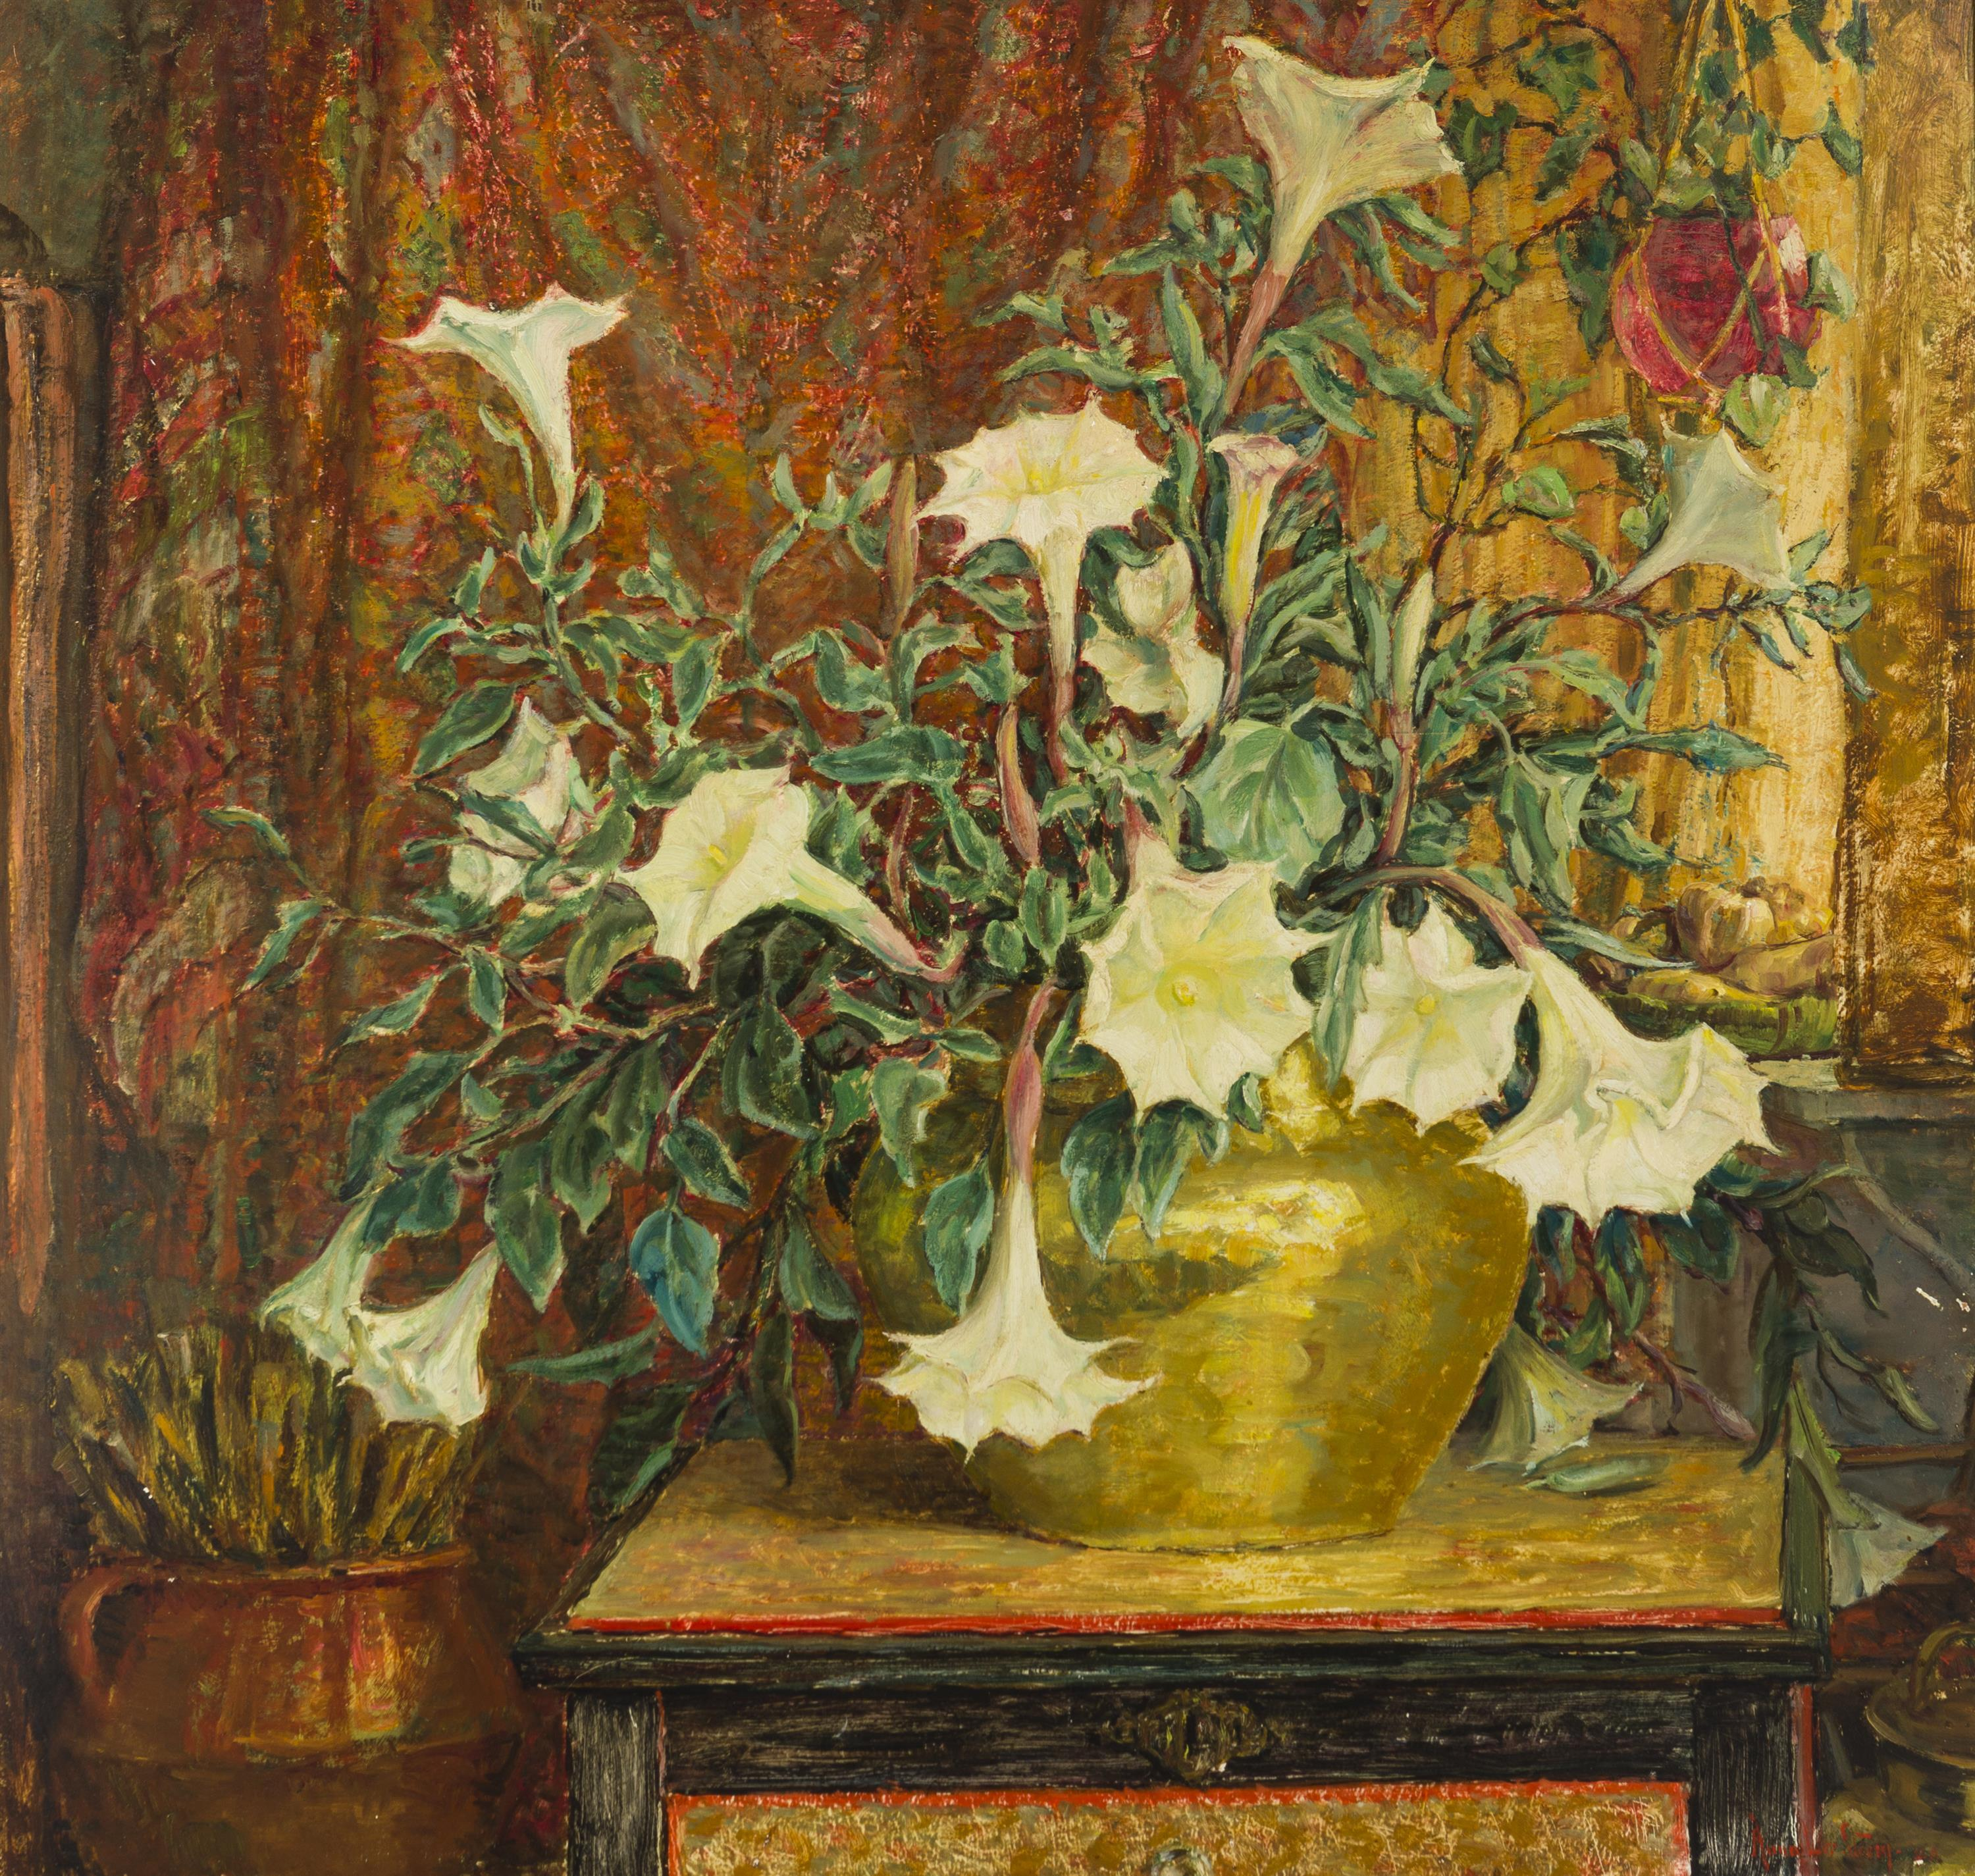 """Anna Lee Stacey, (1865-1943 Pasadena, CA), Still life with angel's trumpet, 1940, Oil on masonite, 34"""" H x 36"""" W"""